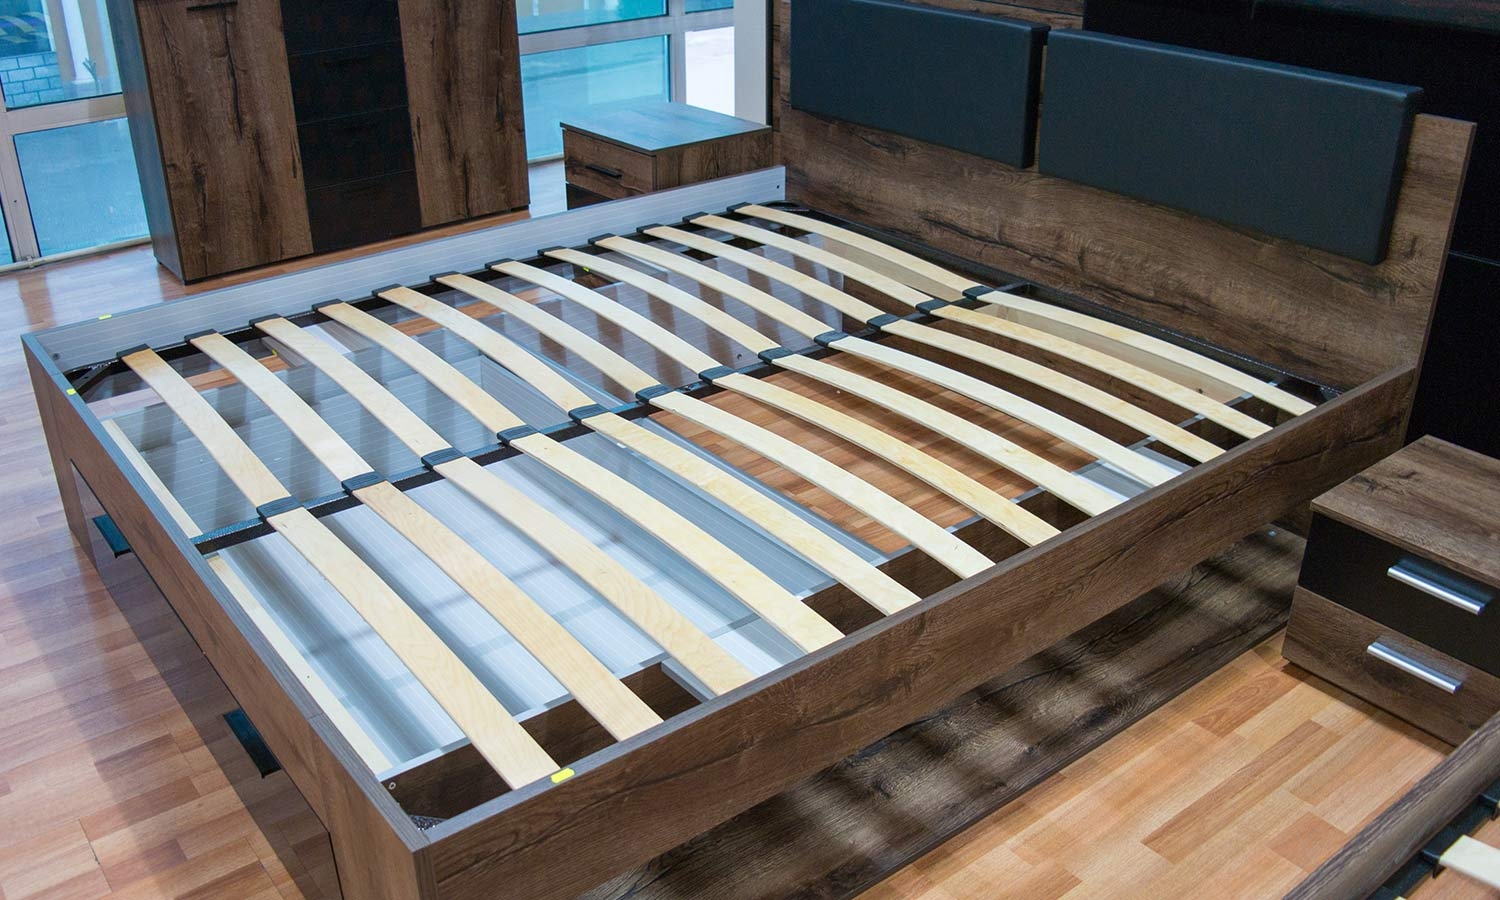 A bed frame where curved wooden slats act as a mattress base.